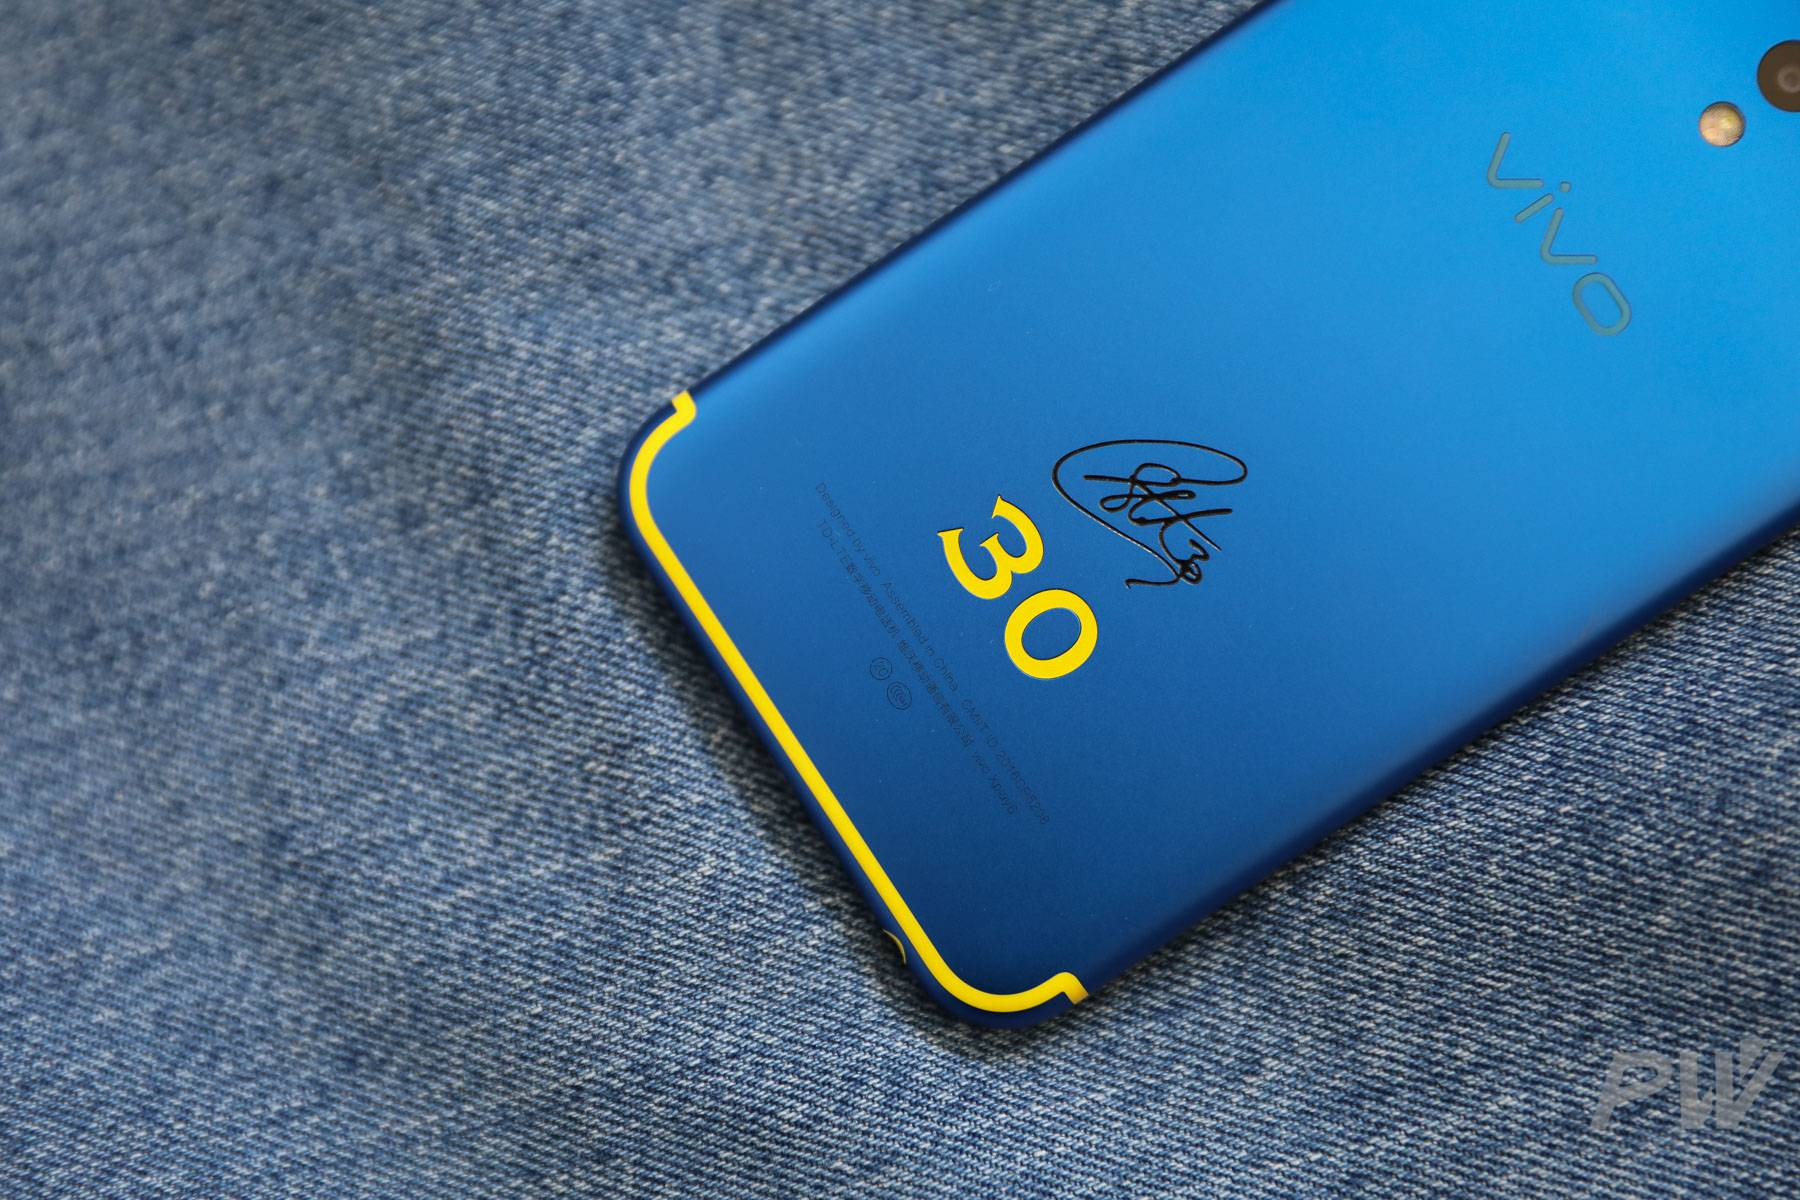 vivo Xplay 6 Stephen Curry 30 Photo By Hao Ying-13